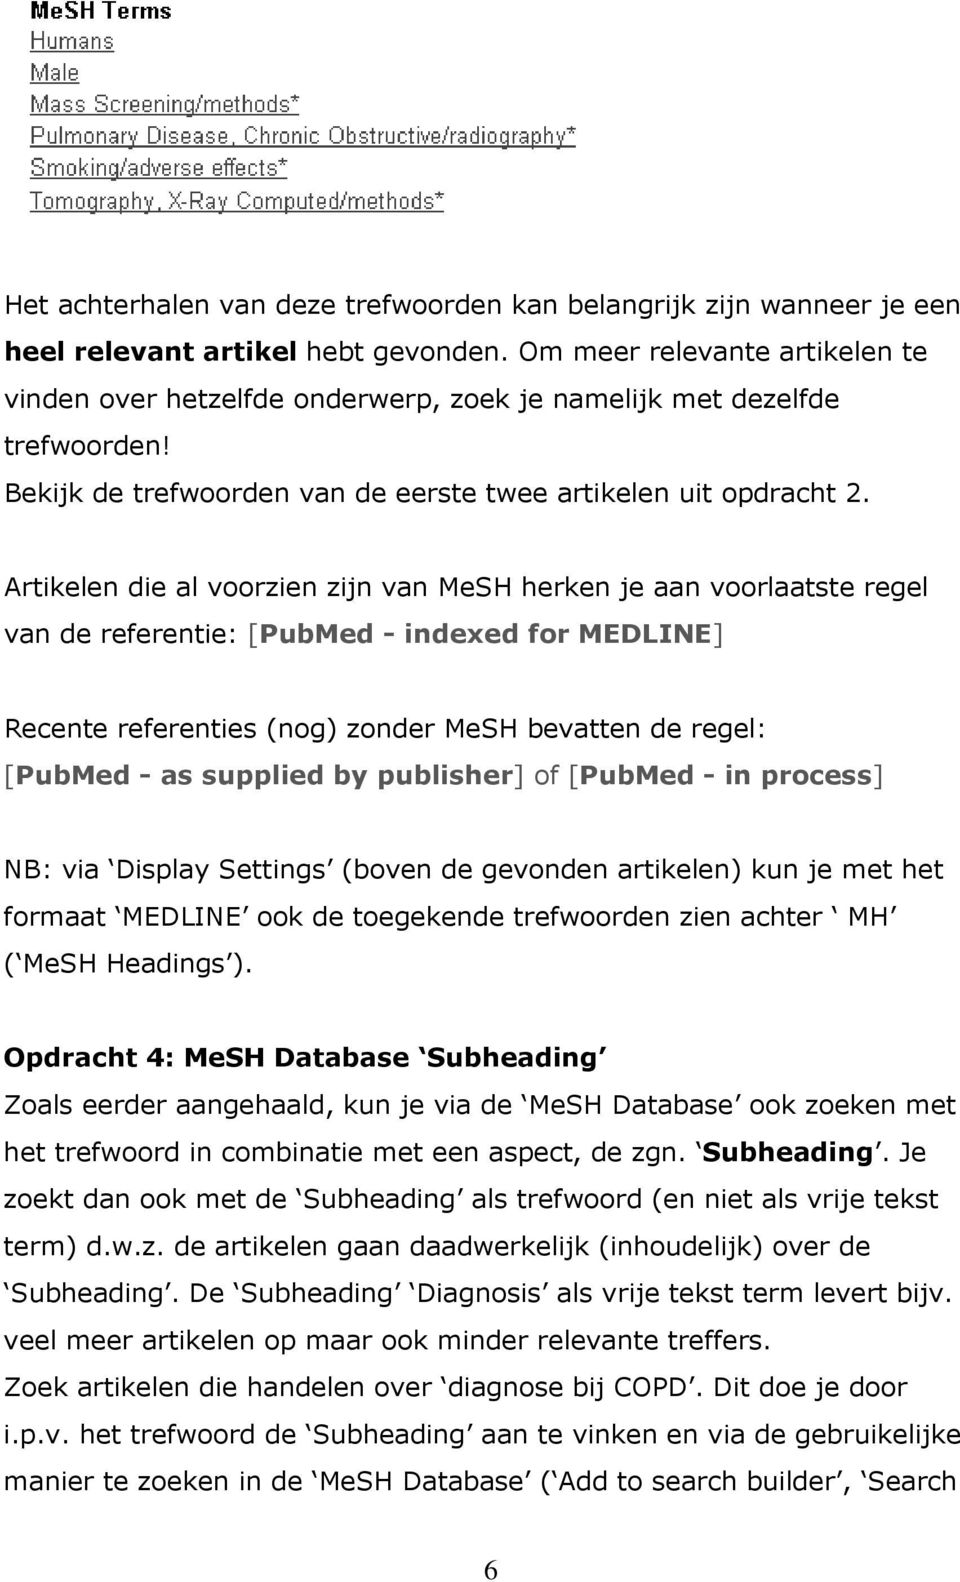 Artikelen die al voorzien zijn van MeSH herken je aan voorlaatste regel van de referentie: [PubMed - indexed for MEDLINE] Recente referenties (nog) zonder MeSH bevatten de regel: [PubMed - as